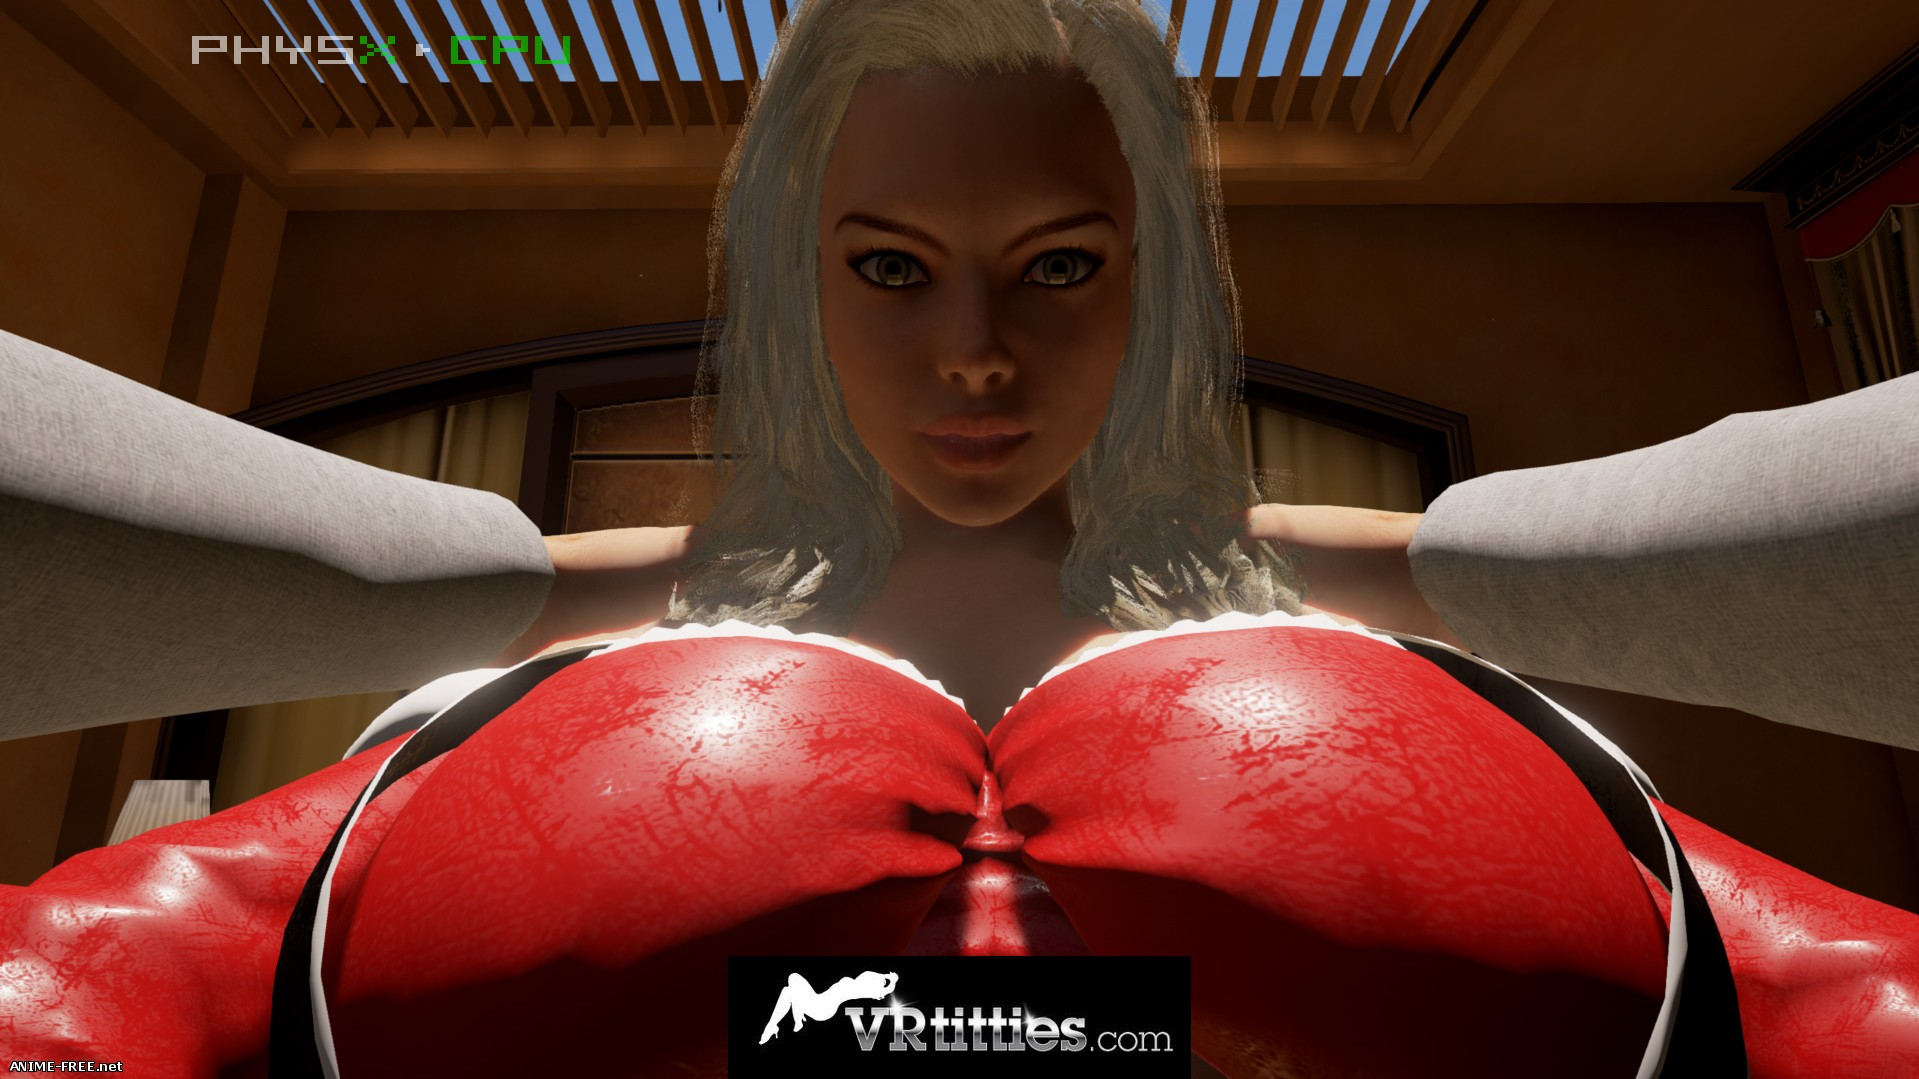 VRtitties 19.3 Vive and Leap Motion Edition + 20.2 [2016] [Uncen] [3D, SLG, Constructor] [ENG] H-Game